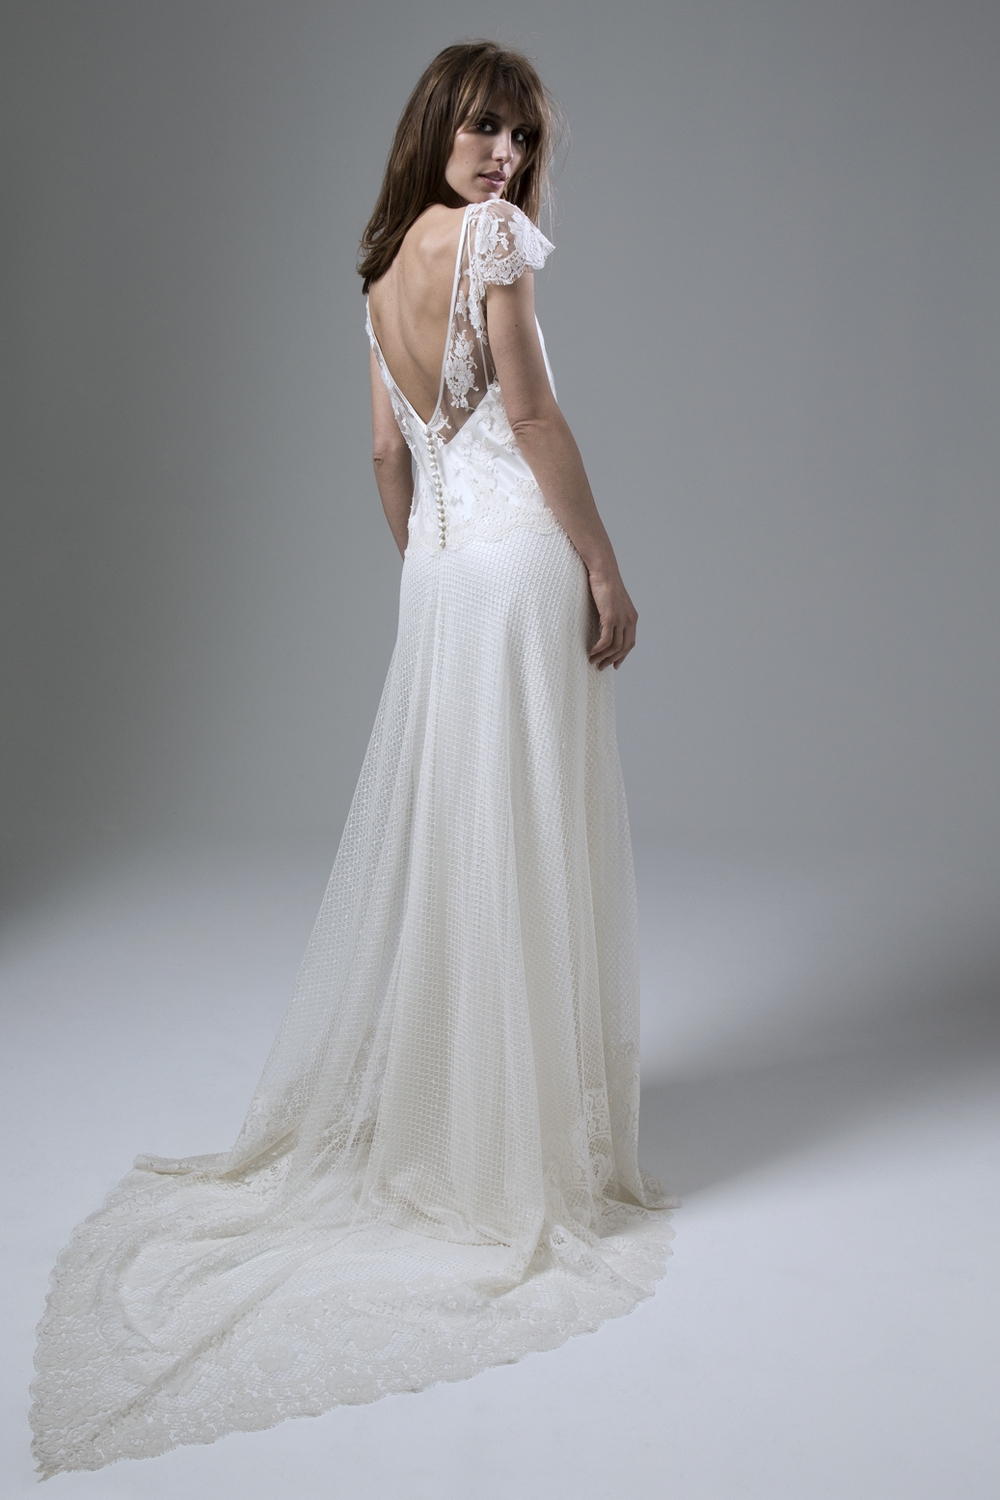 Back View Of The Iris Honey Full French Lace Wedding Dress By Halfpenny  London